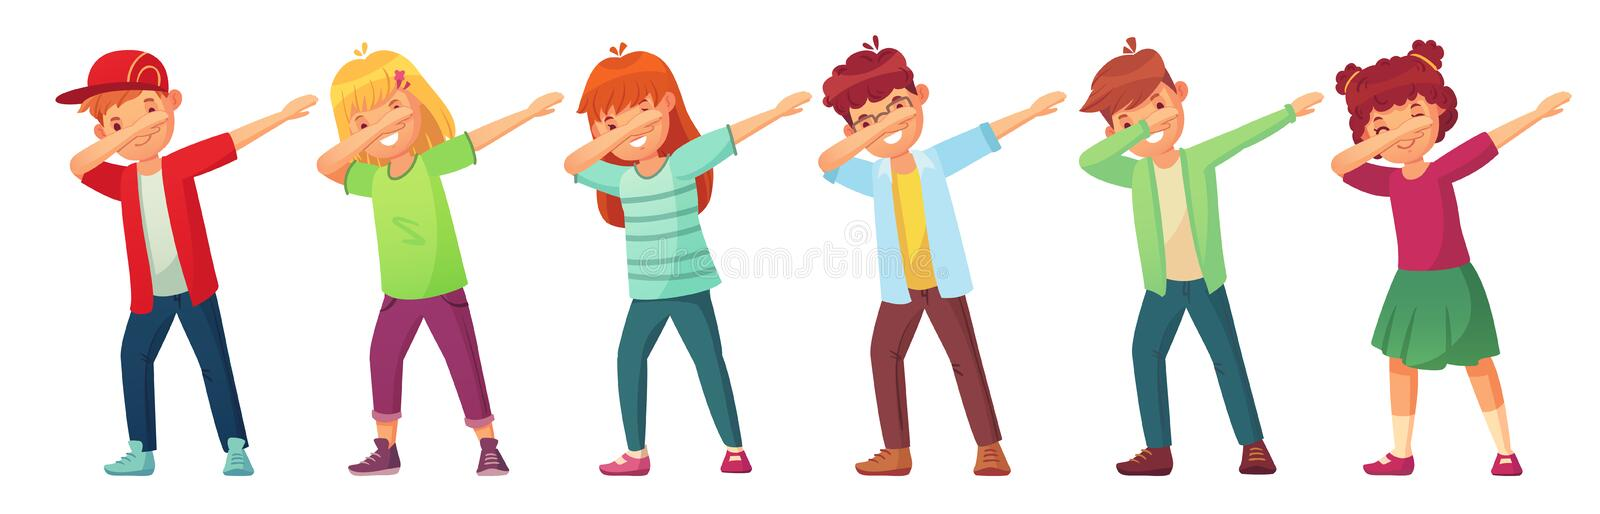 Kids Dance Stock Illustrations 5 402 Kids Dance Stock Illustrations Vectors Clipart Dreamstime